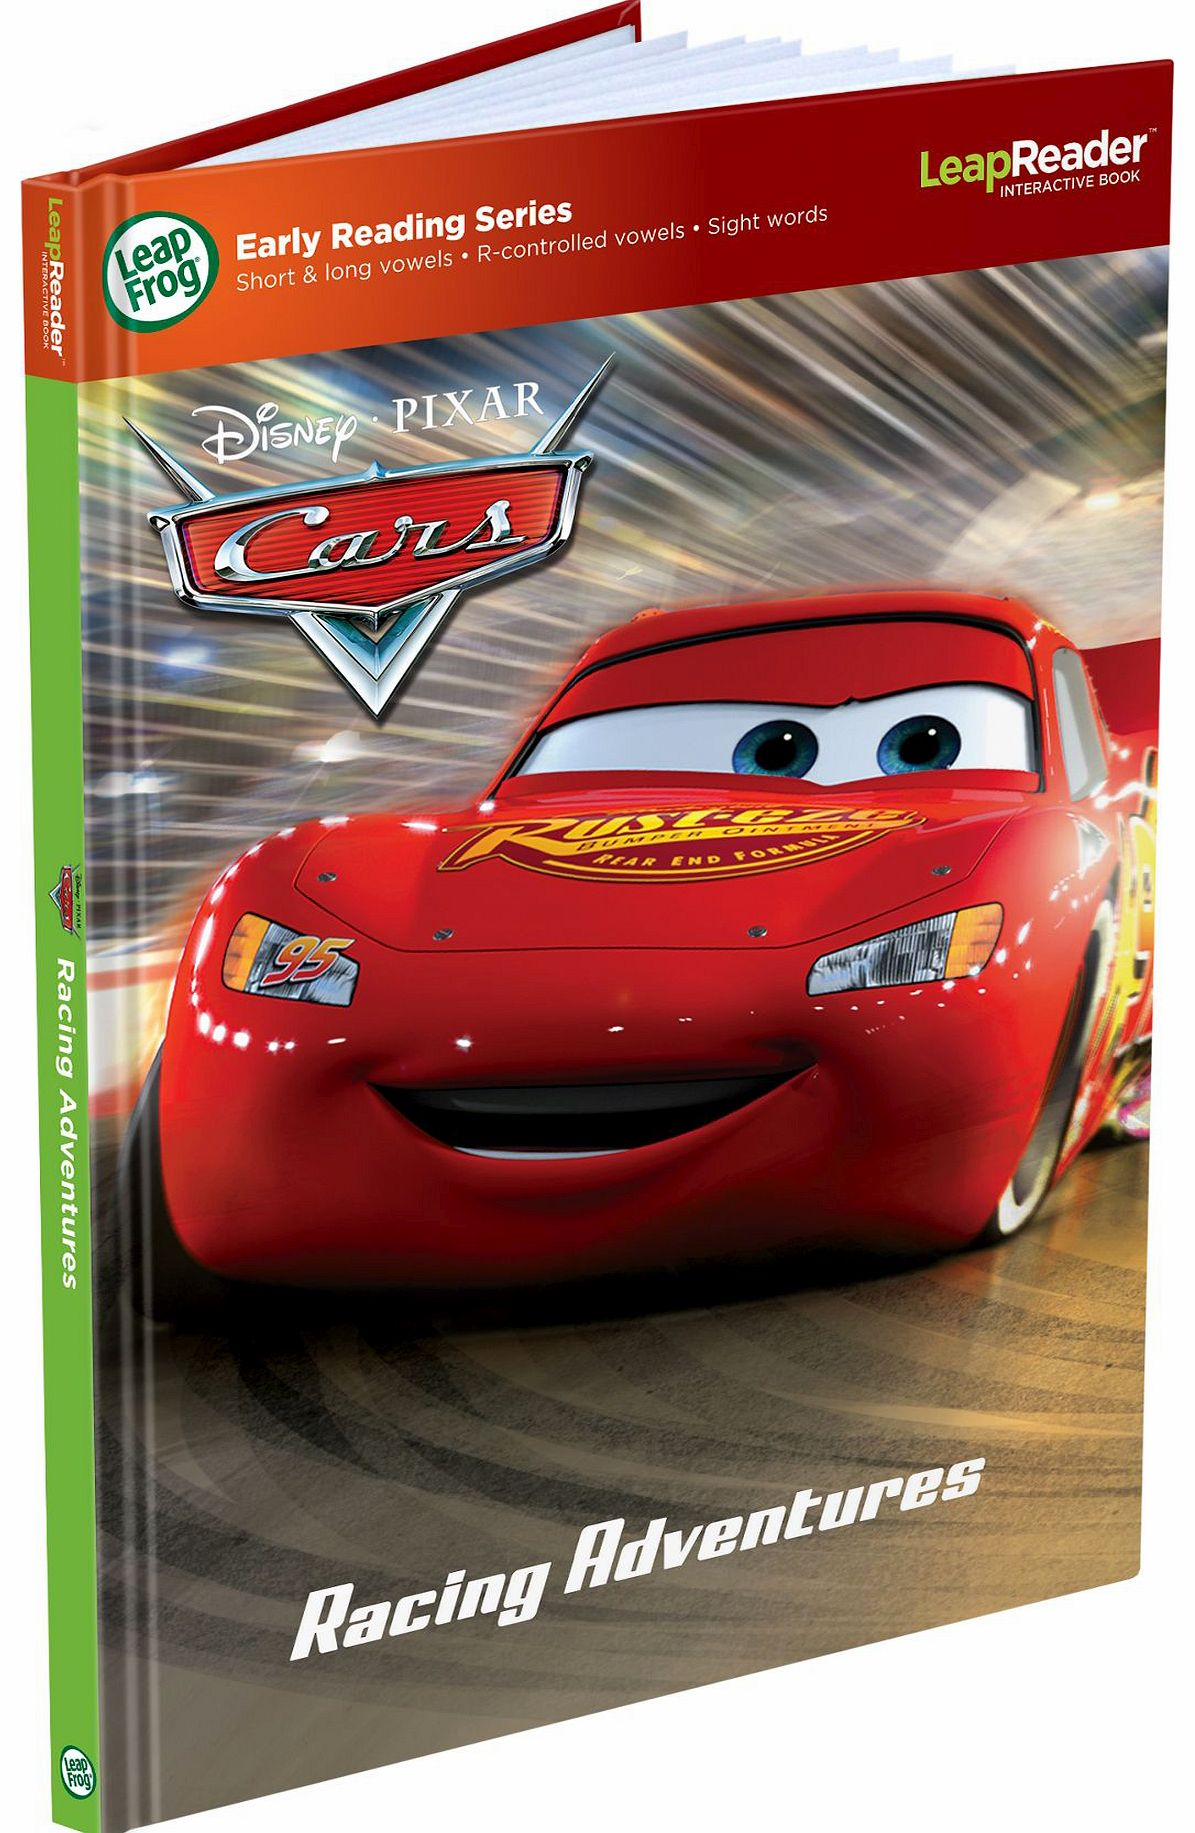 Cars Lightning Mcqueen Ultimate Race Set 9485 Tag Book Racing Adventures